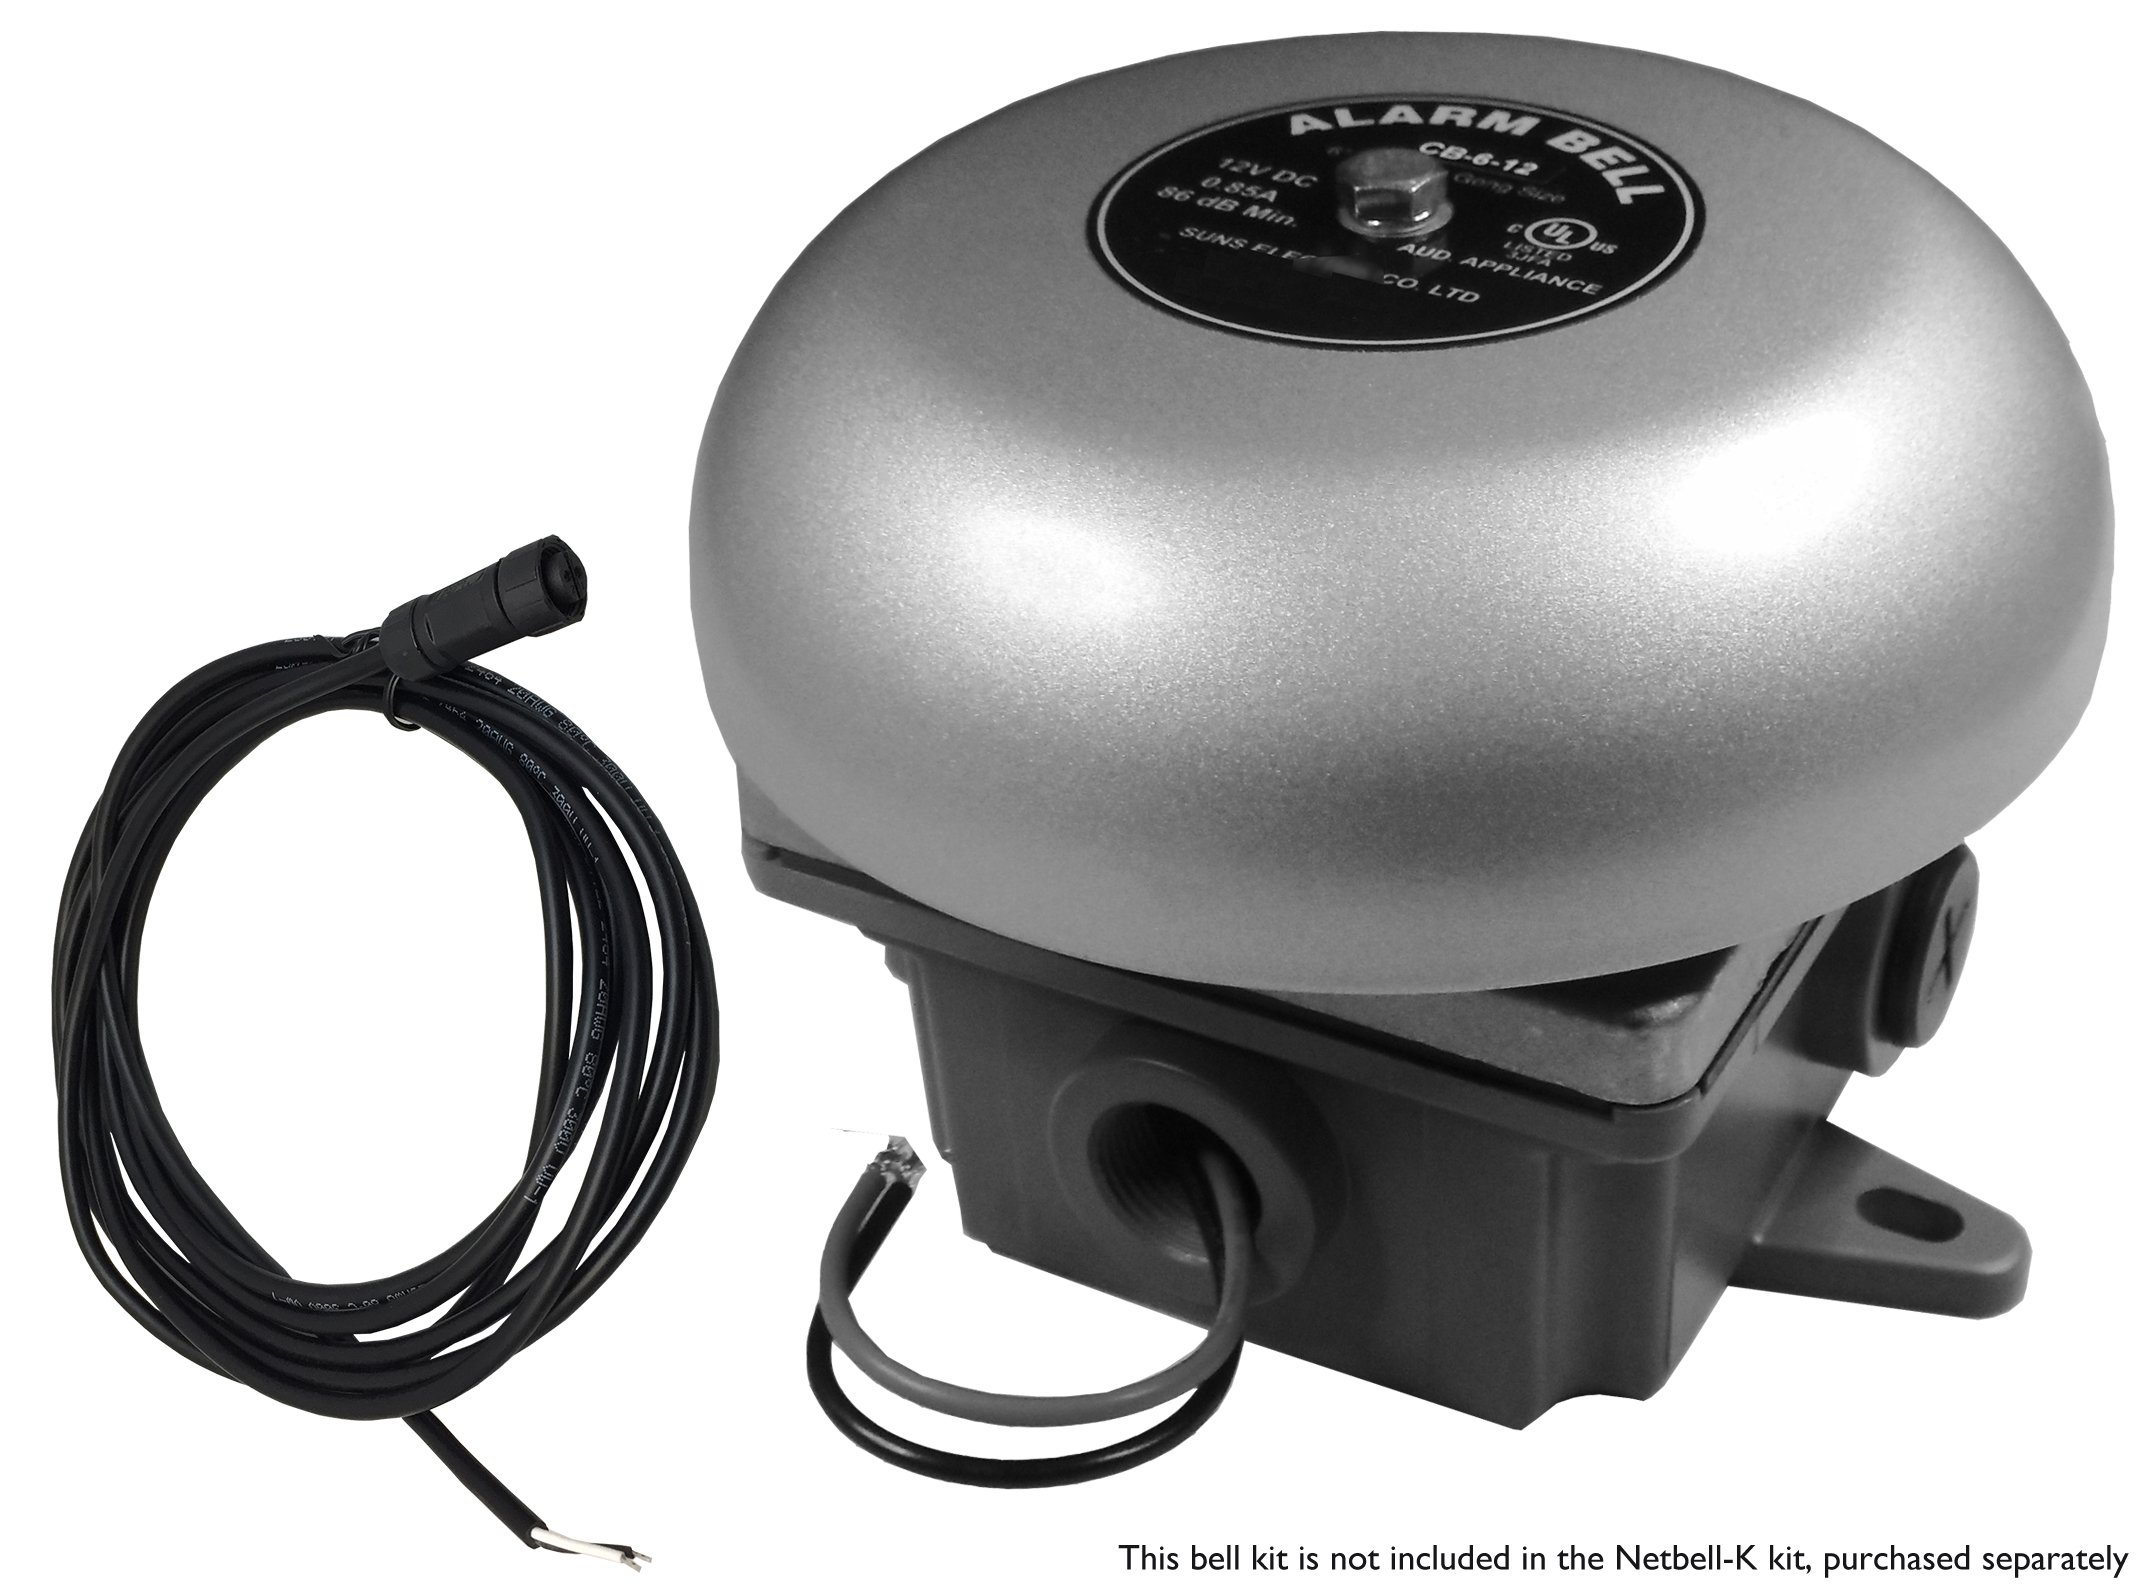 NETBELL-K EXTERNAL BELL KIT:  SIGNAL BELL 6 INCH WITH WEATHERPROOF BACK BOX AND POWER SUPPLY AND CP CONNECTOR BELL CABLE